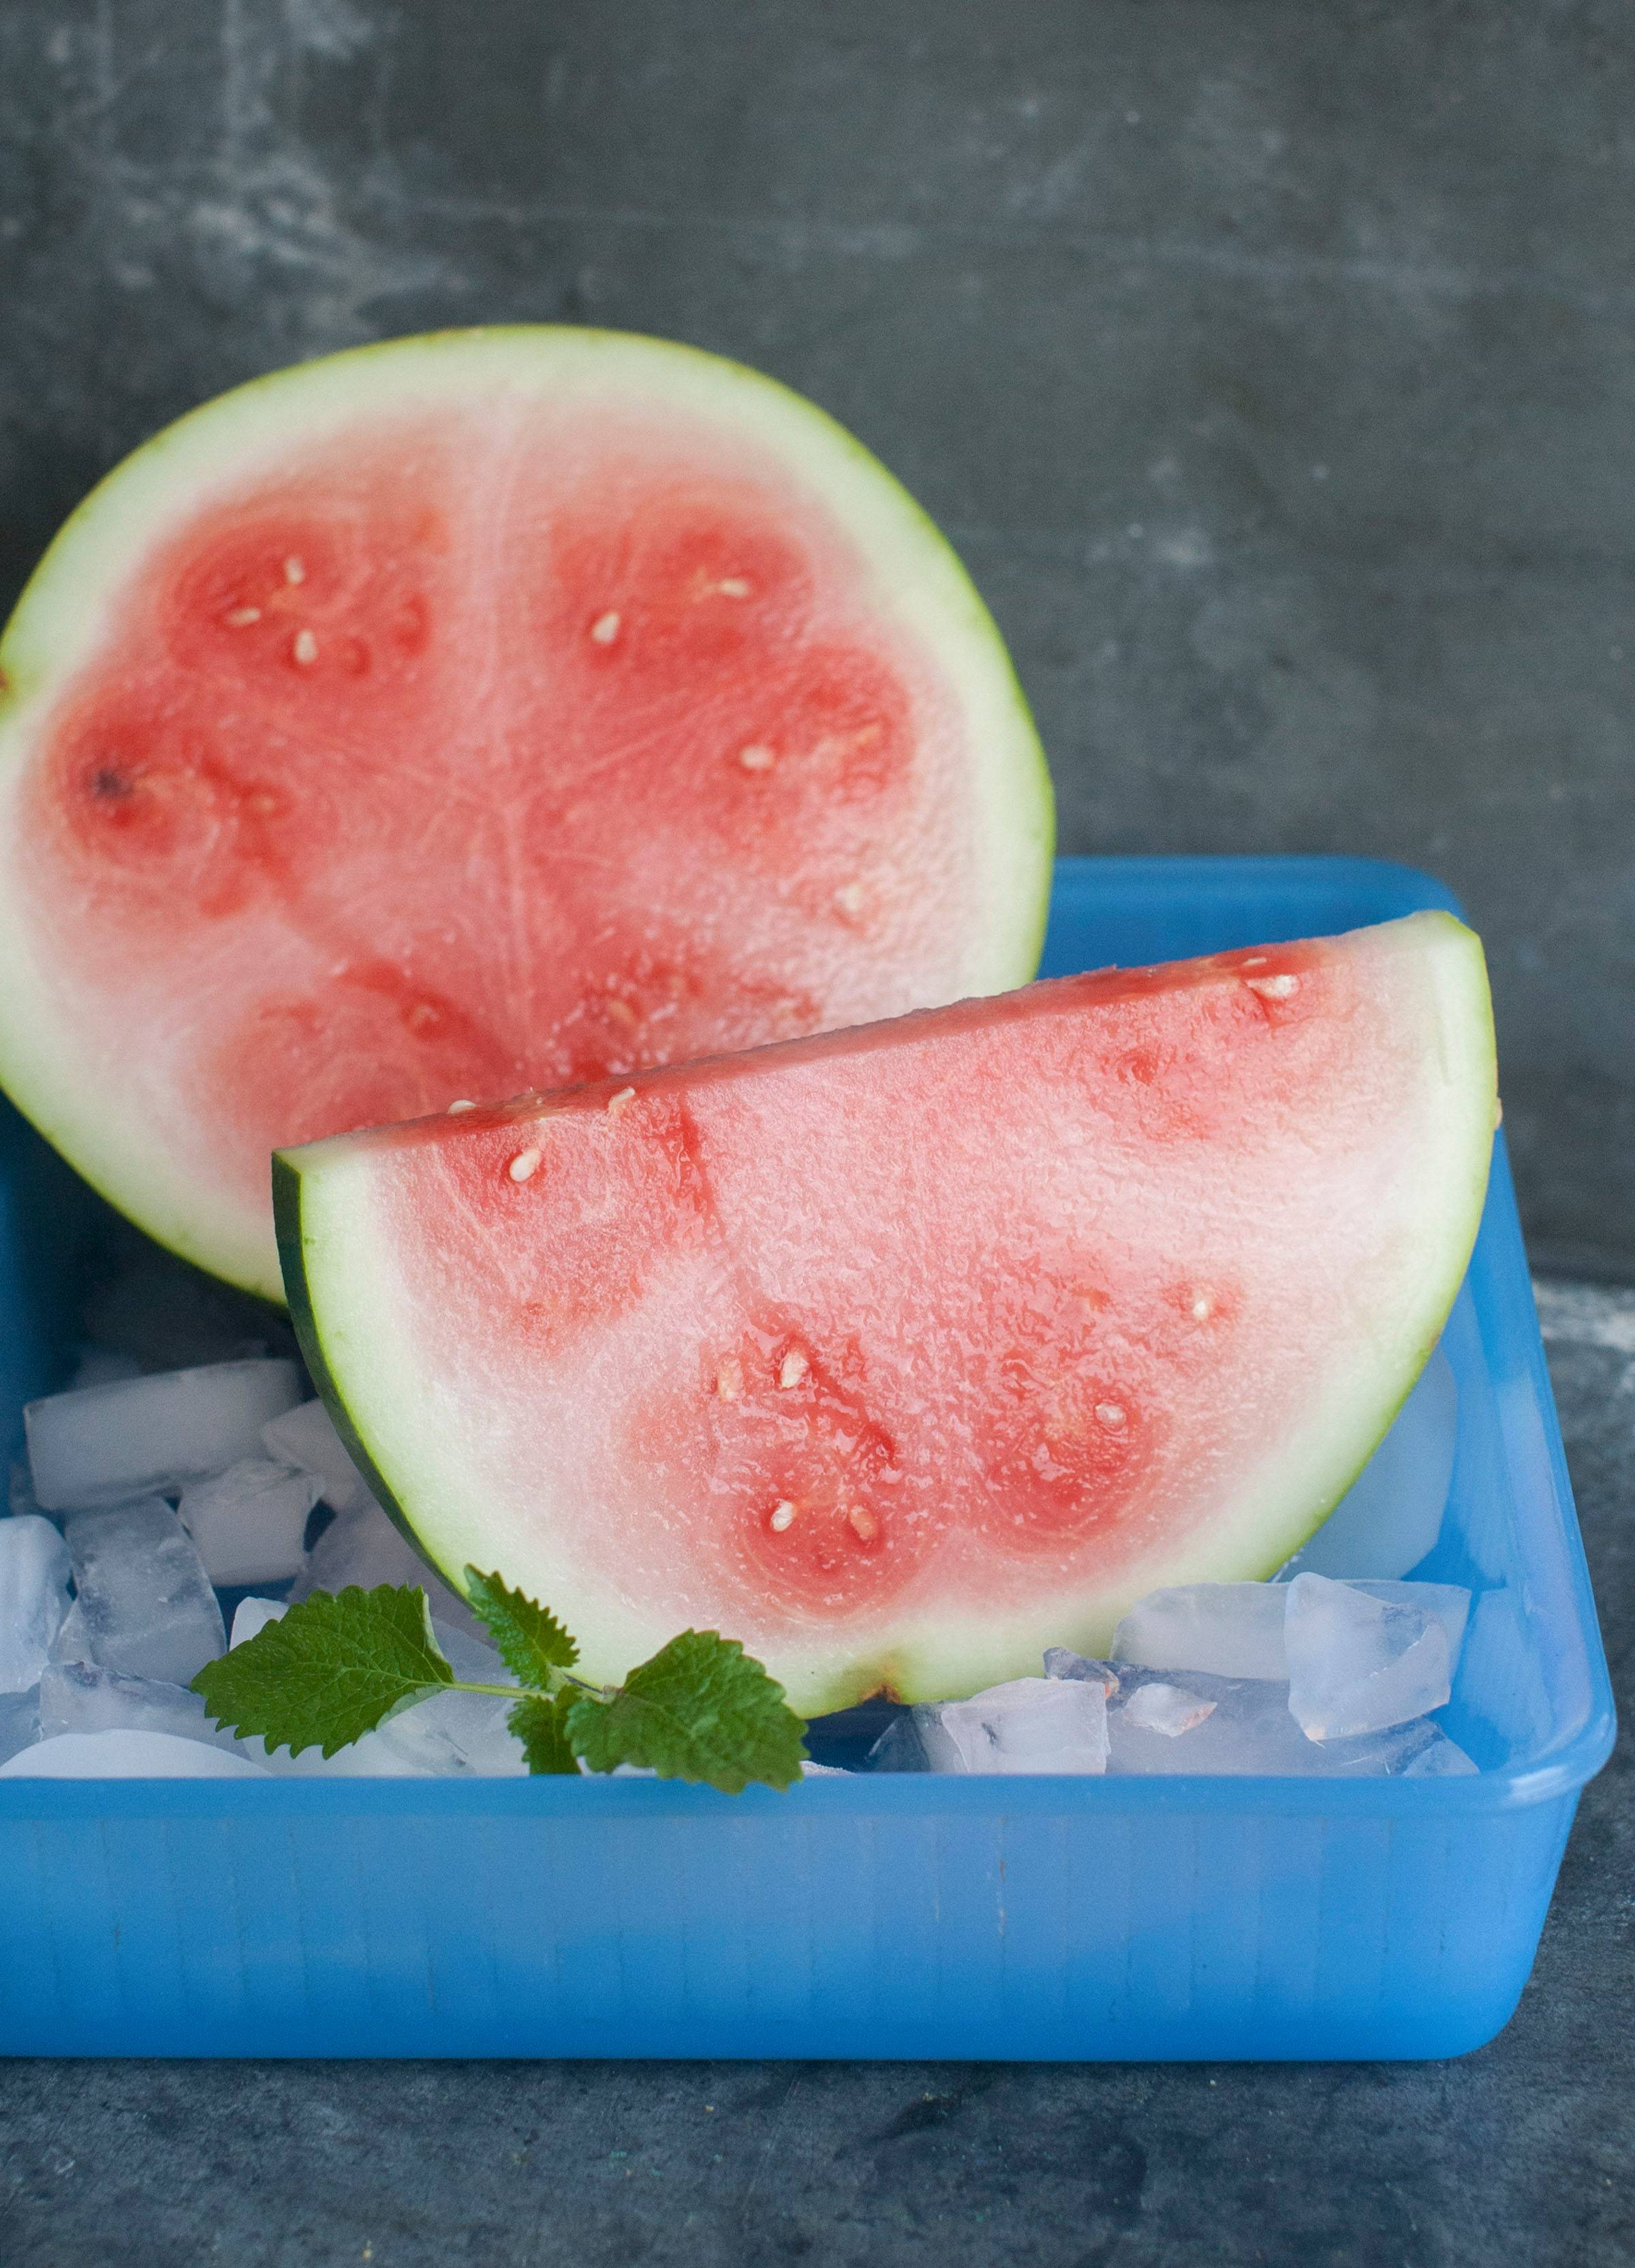 Watermelon slices are fine, but there's more than one way to enjoy this melon.